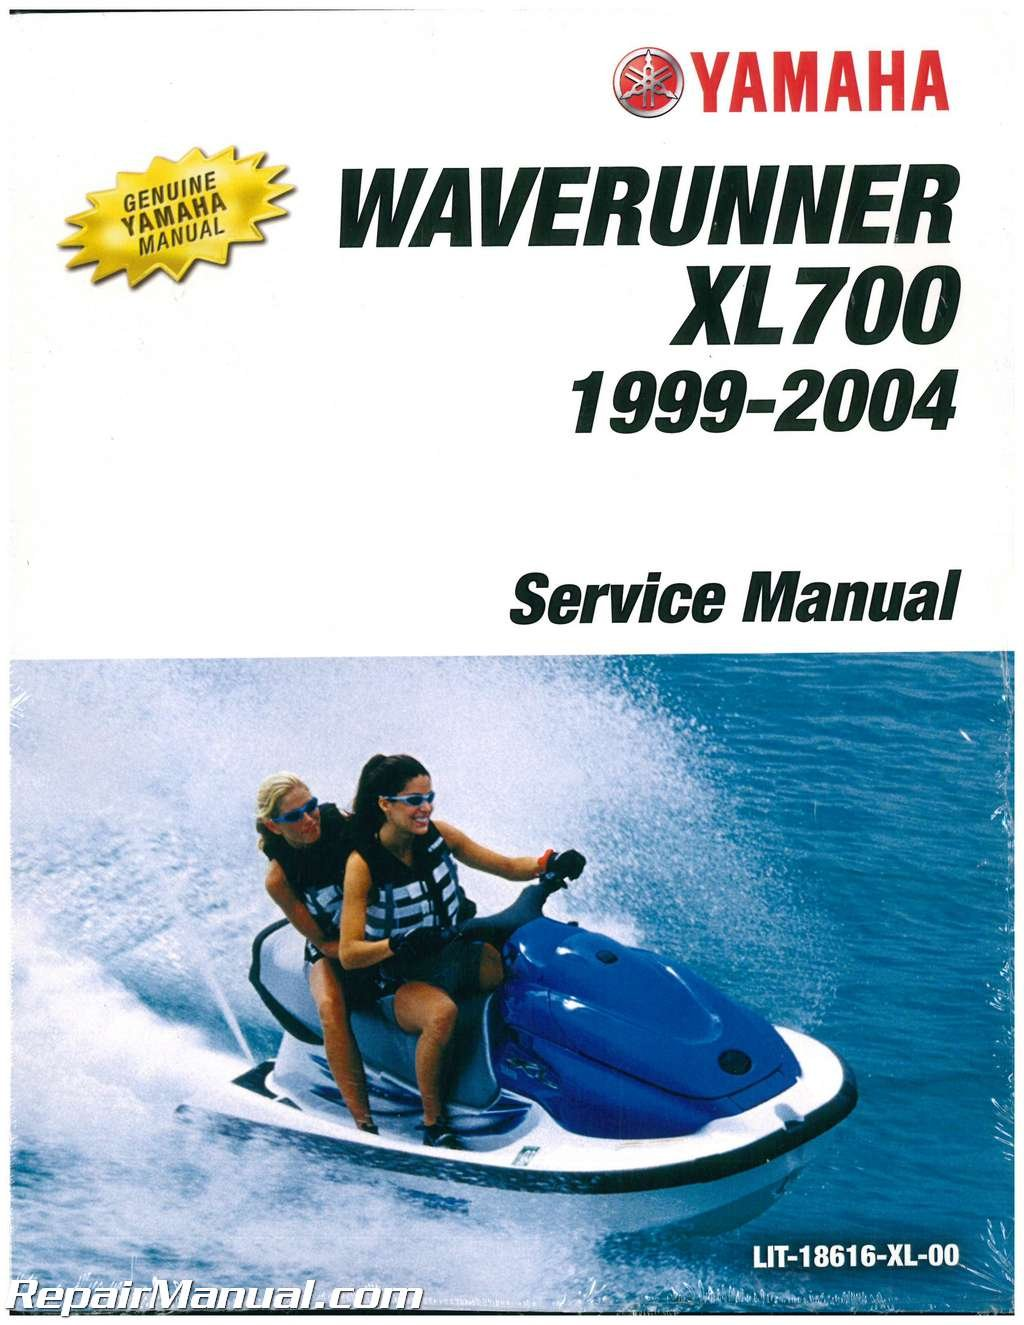 LIT-18616-XL-00 1999-2004 Yamaha XL700 XL760 Waverunner Service Manual:  Manufacturer: Amazon.com: Books